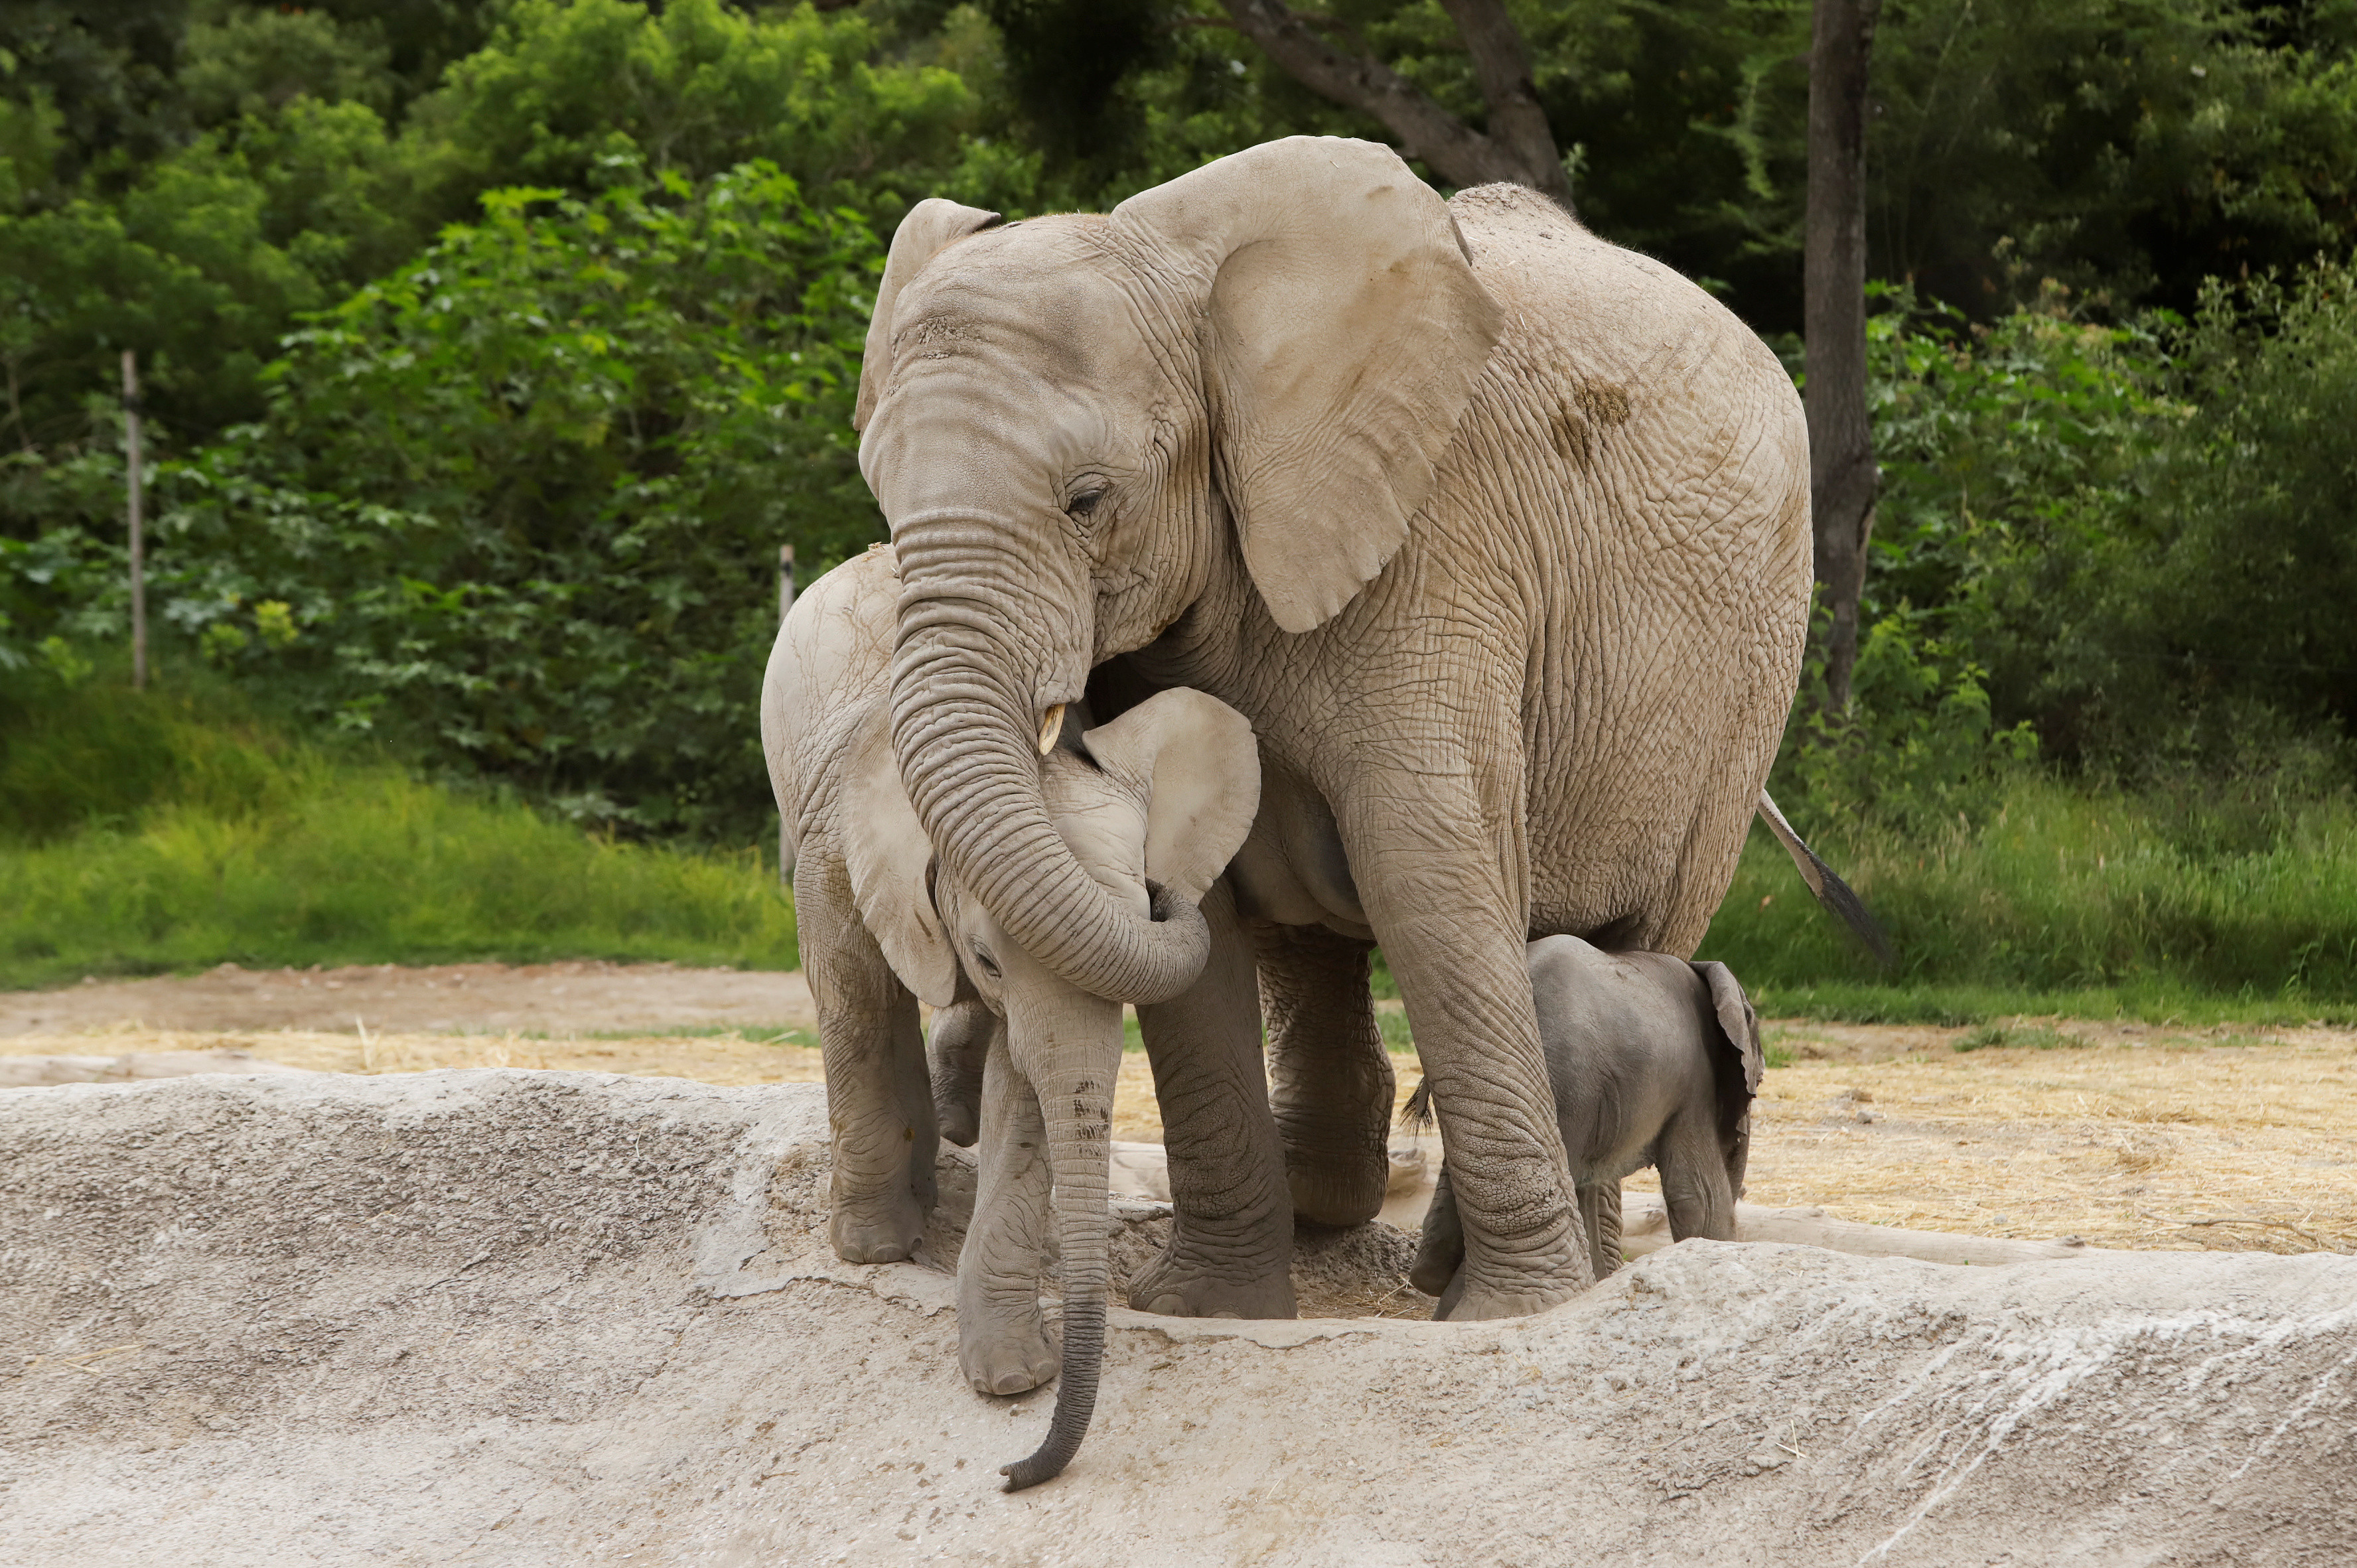 An African elephant calf, which was born at Africam Safari zoo as part of its breeding programme, is seen with its mother at their enclosure, in Valsequillo, Mexico August 12, 2020. REUTERS/Imelda Medina - RC2LCI9KF3GQ